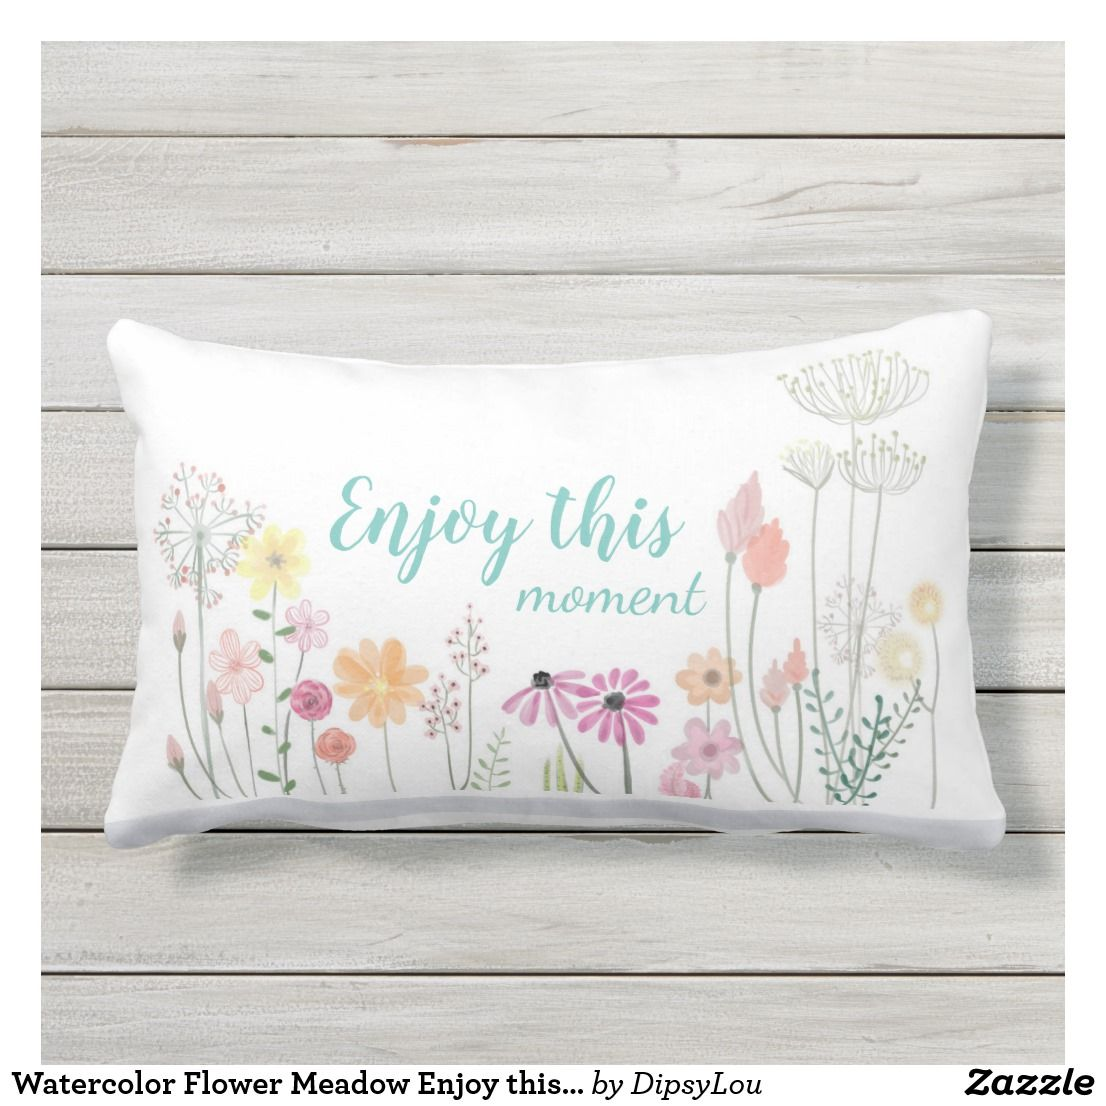 Watercolor Flower Meadow Enjoy This Moment Lumbar Pillow Zazzle Com Watercolor Flowers Lumbar Pillow Outdoor Pillows